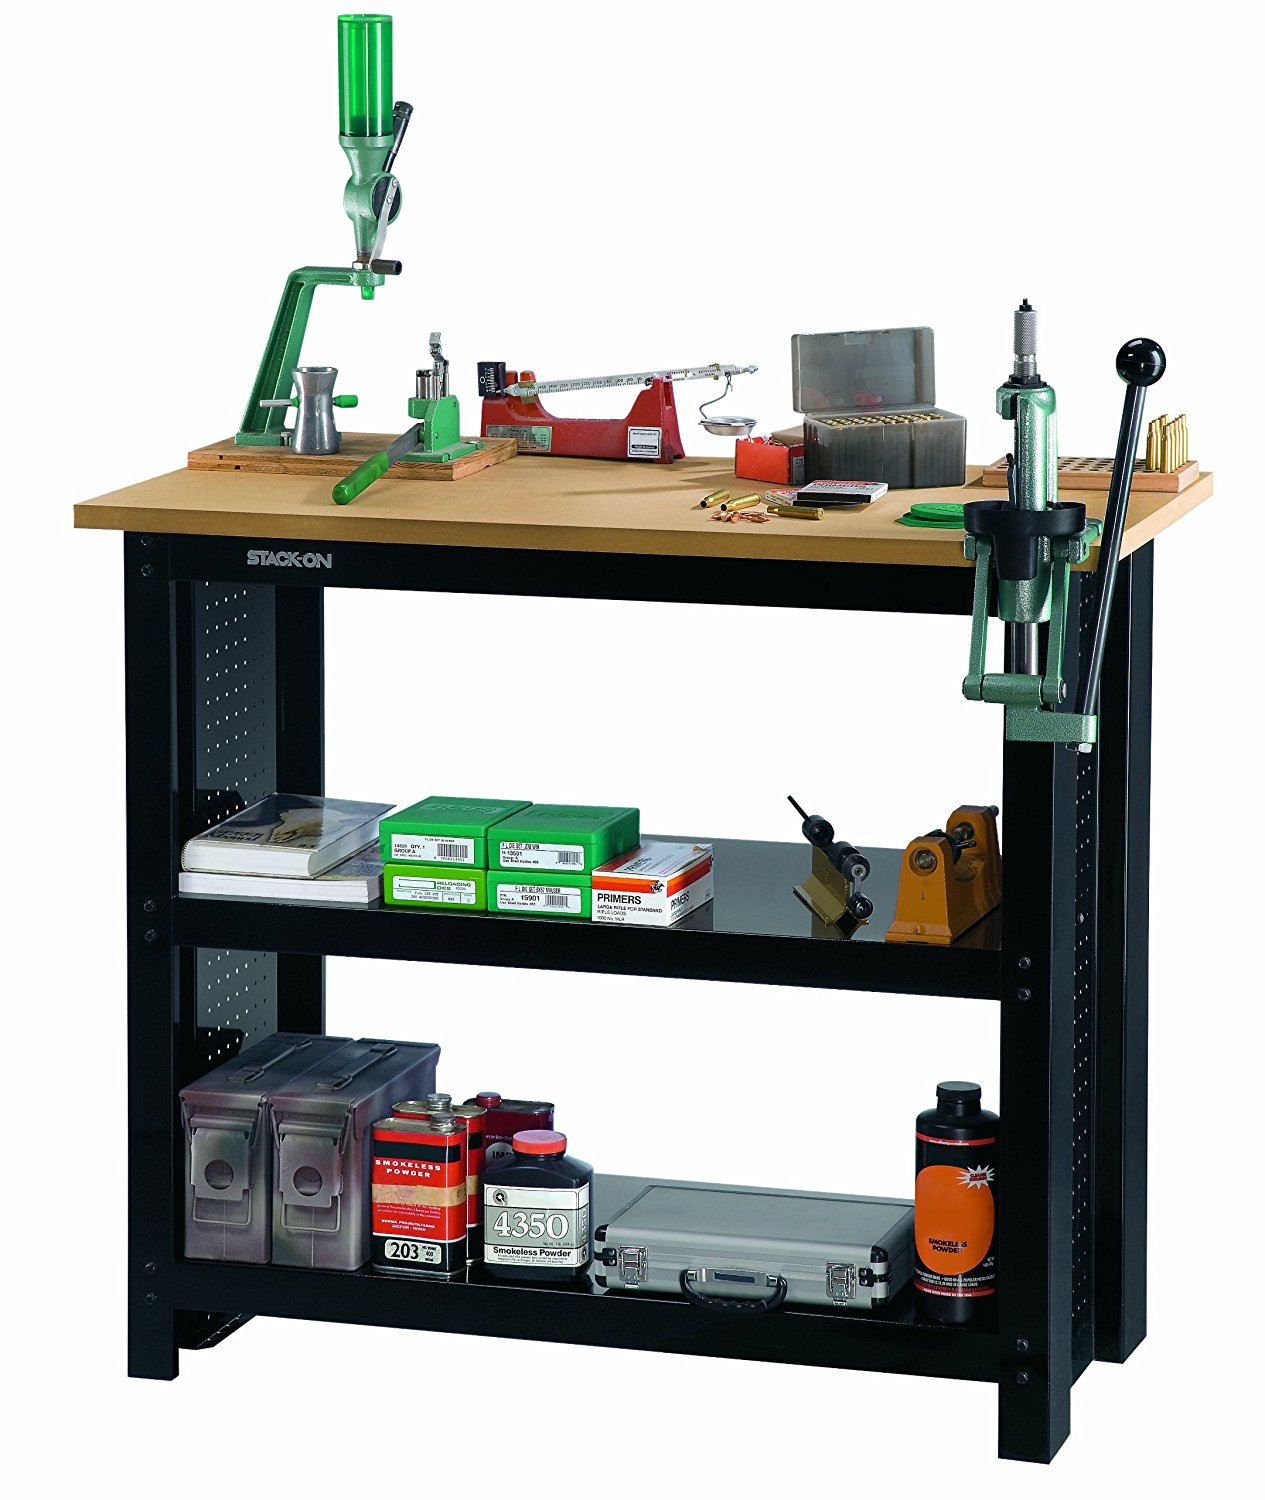 Reloading Benches | Cheap Reloading Bench | Reloading Benches